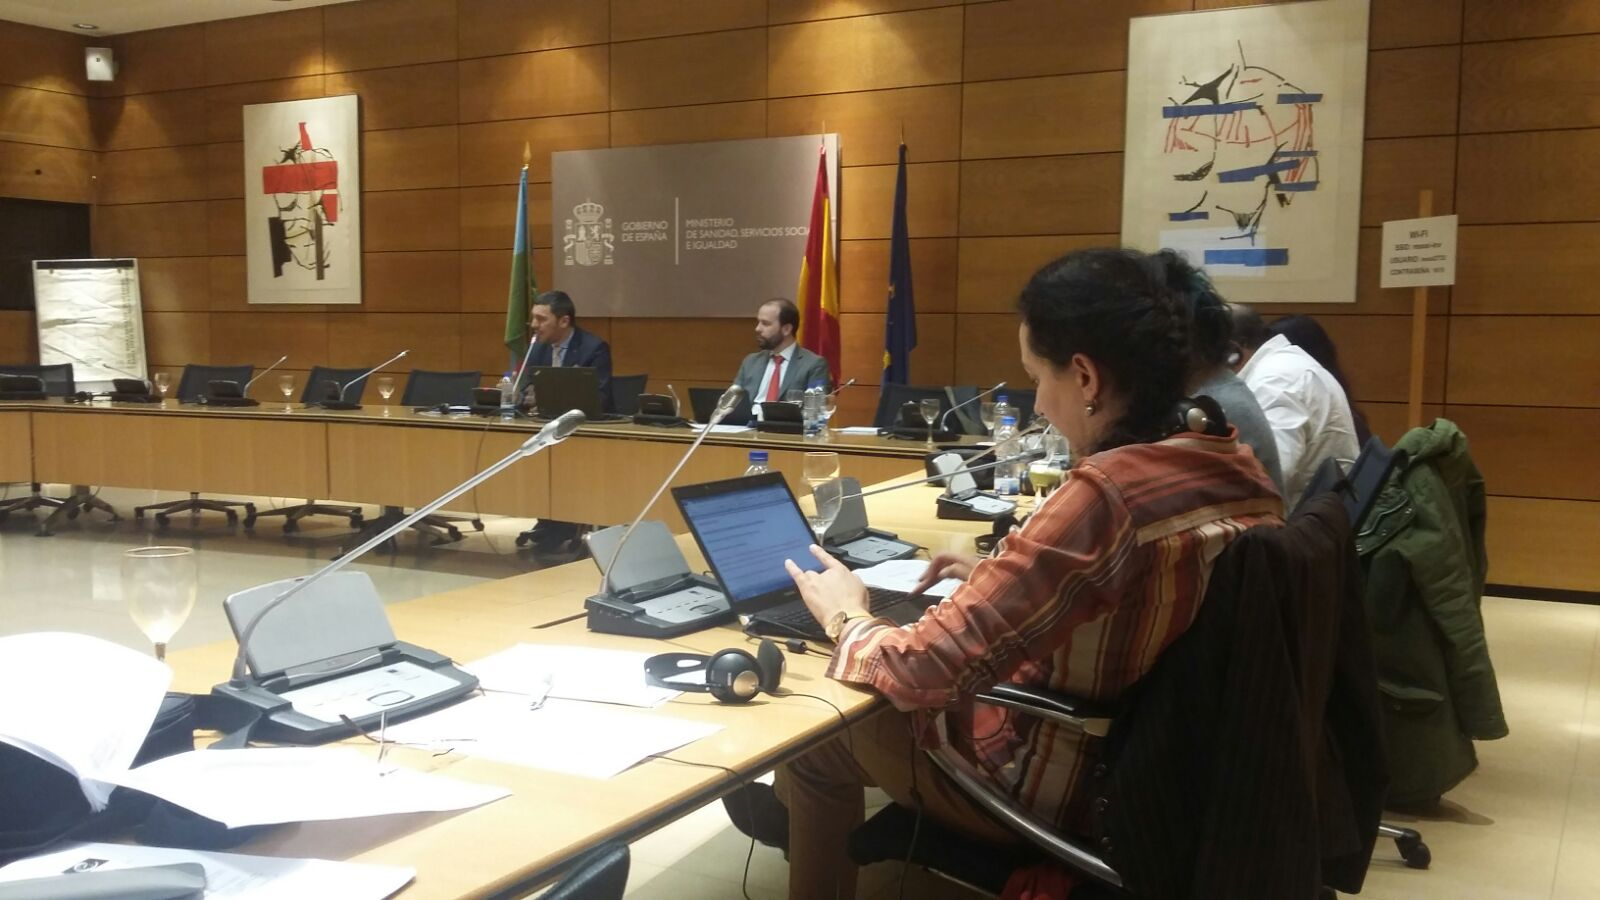 Ad hoc Committee of Experts on Roma and Traveller Issues (CAHROM) visited Spain